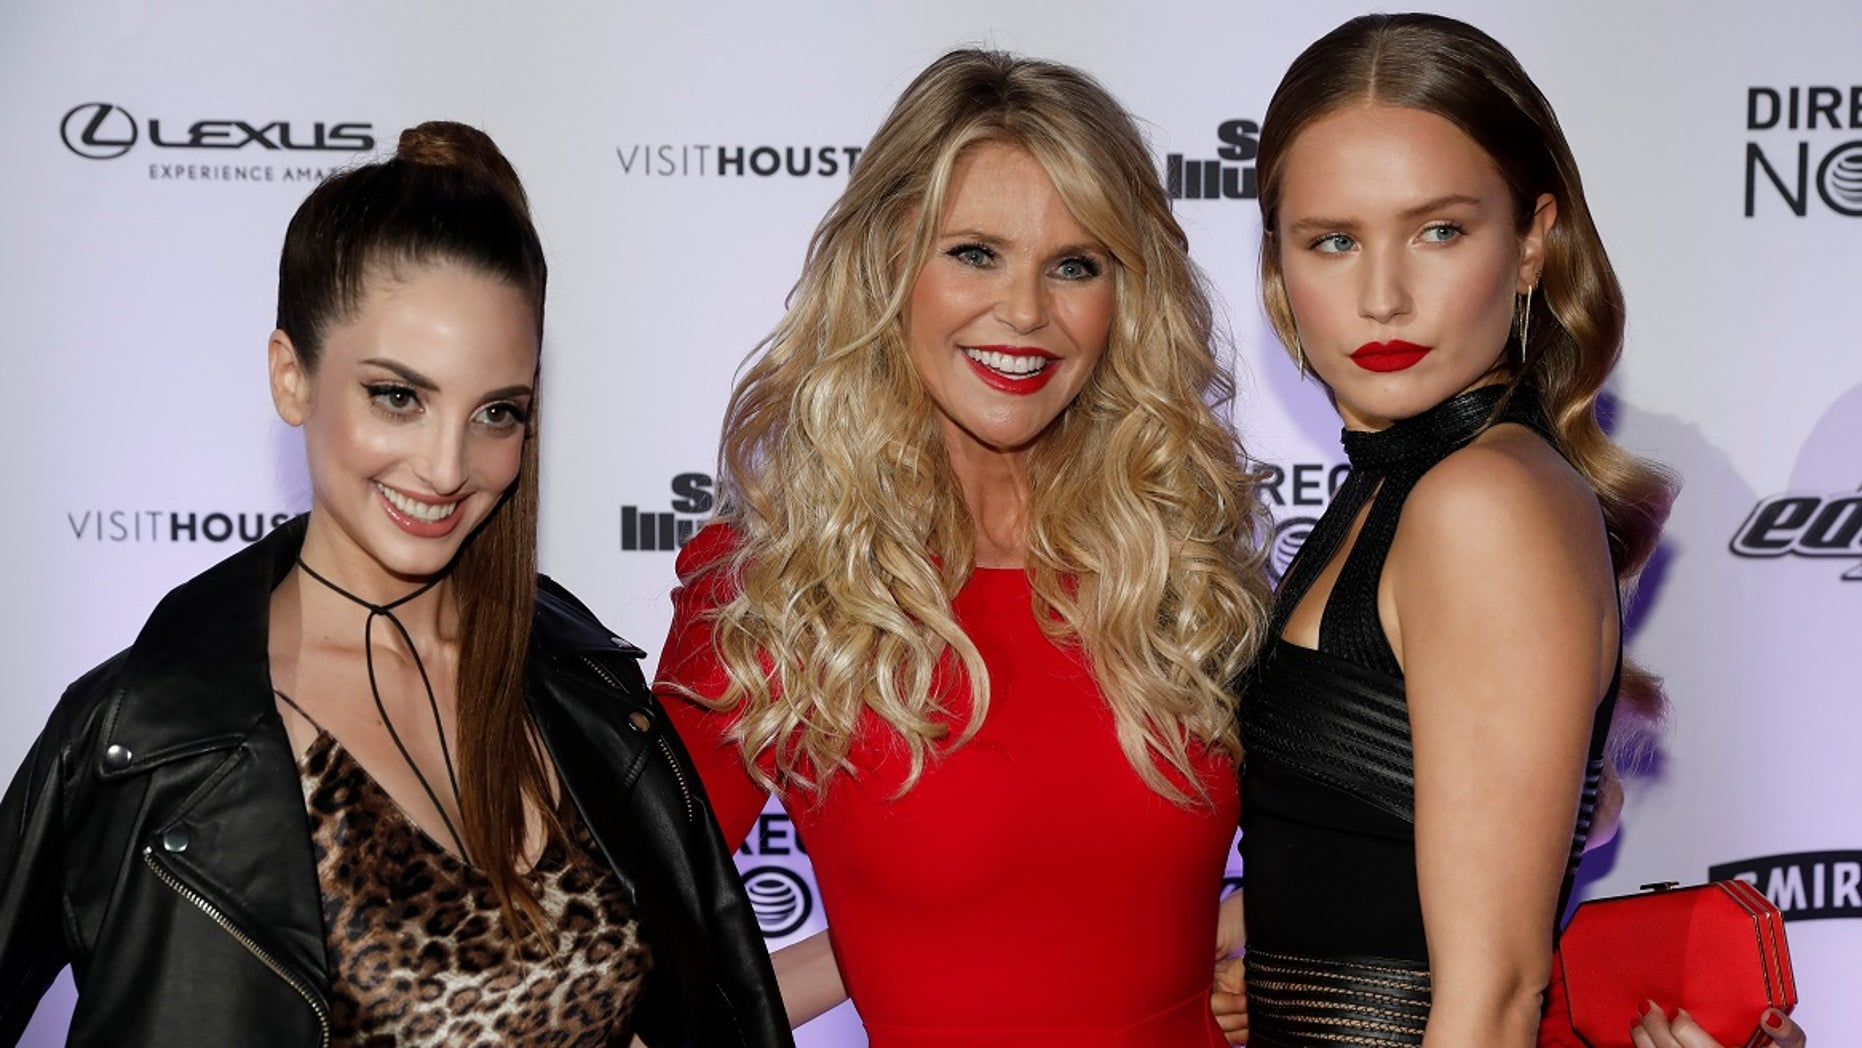 Alexa Ray Joel (left) defended herself after an Instagram troll compared her to Christie Brinkley's (middle) other daughter Sailor Brinkley Cook (right).